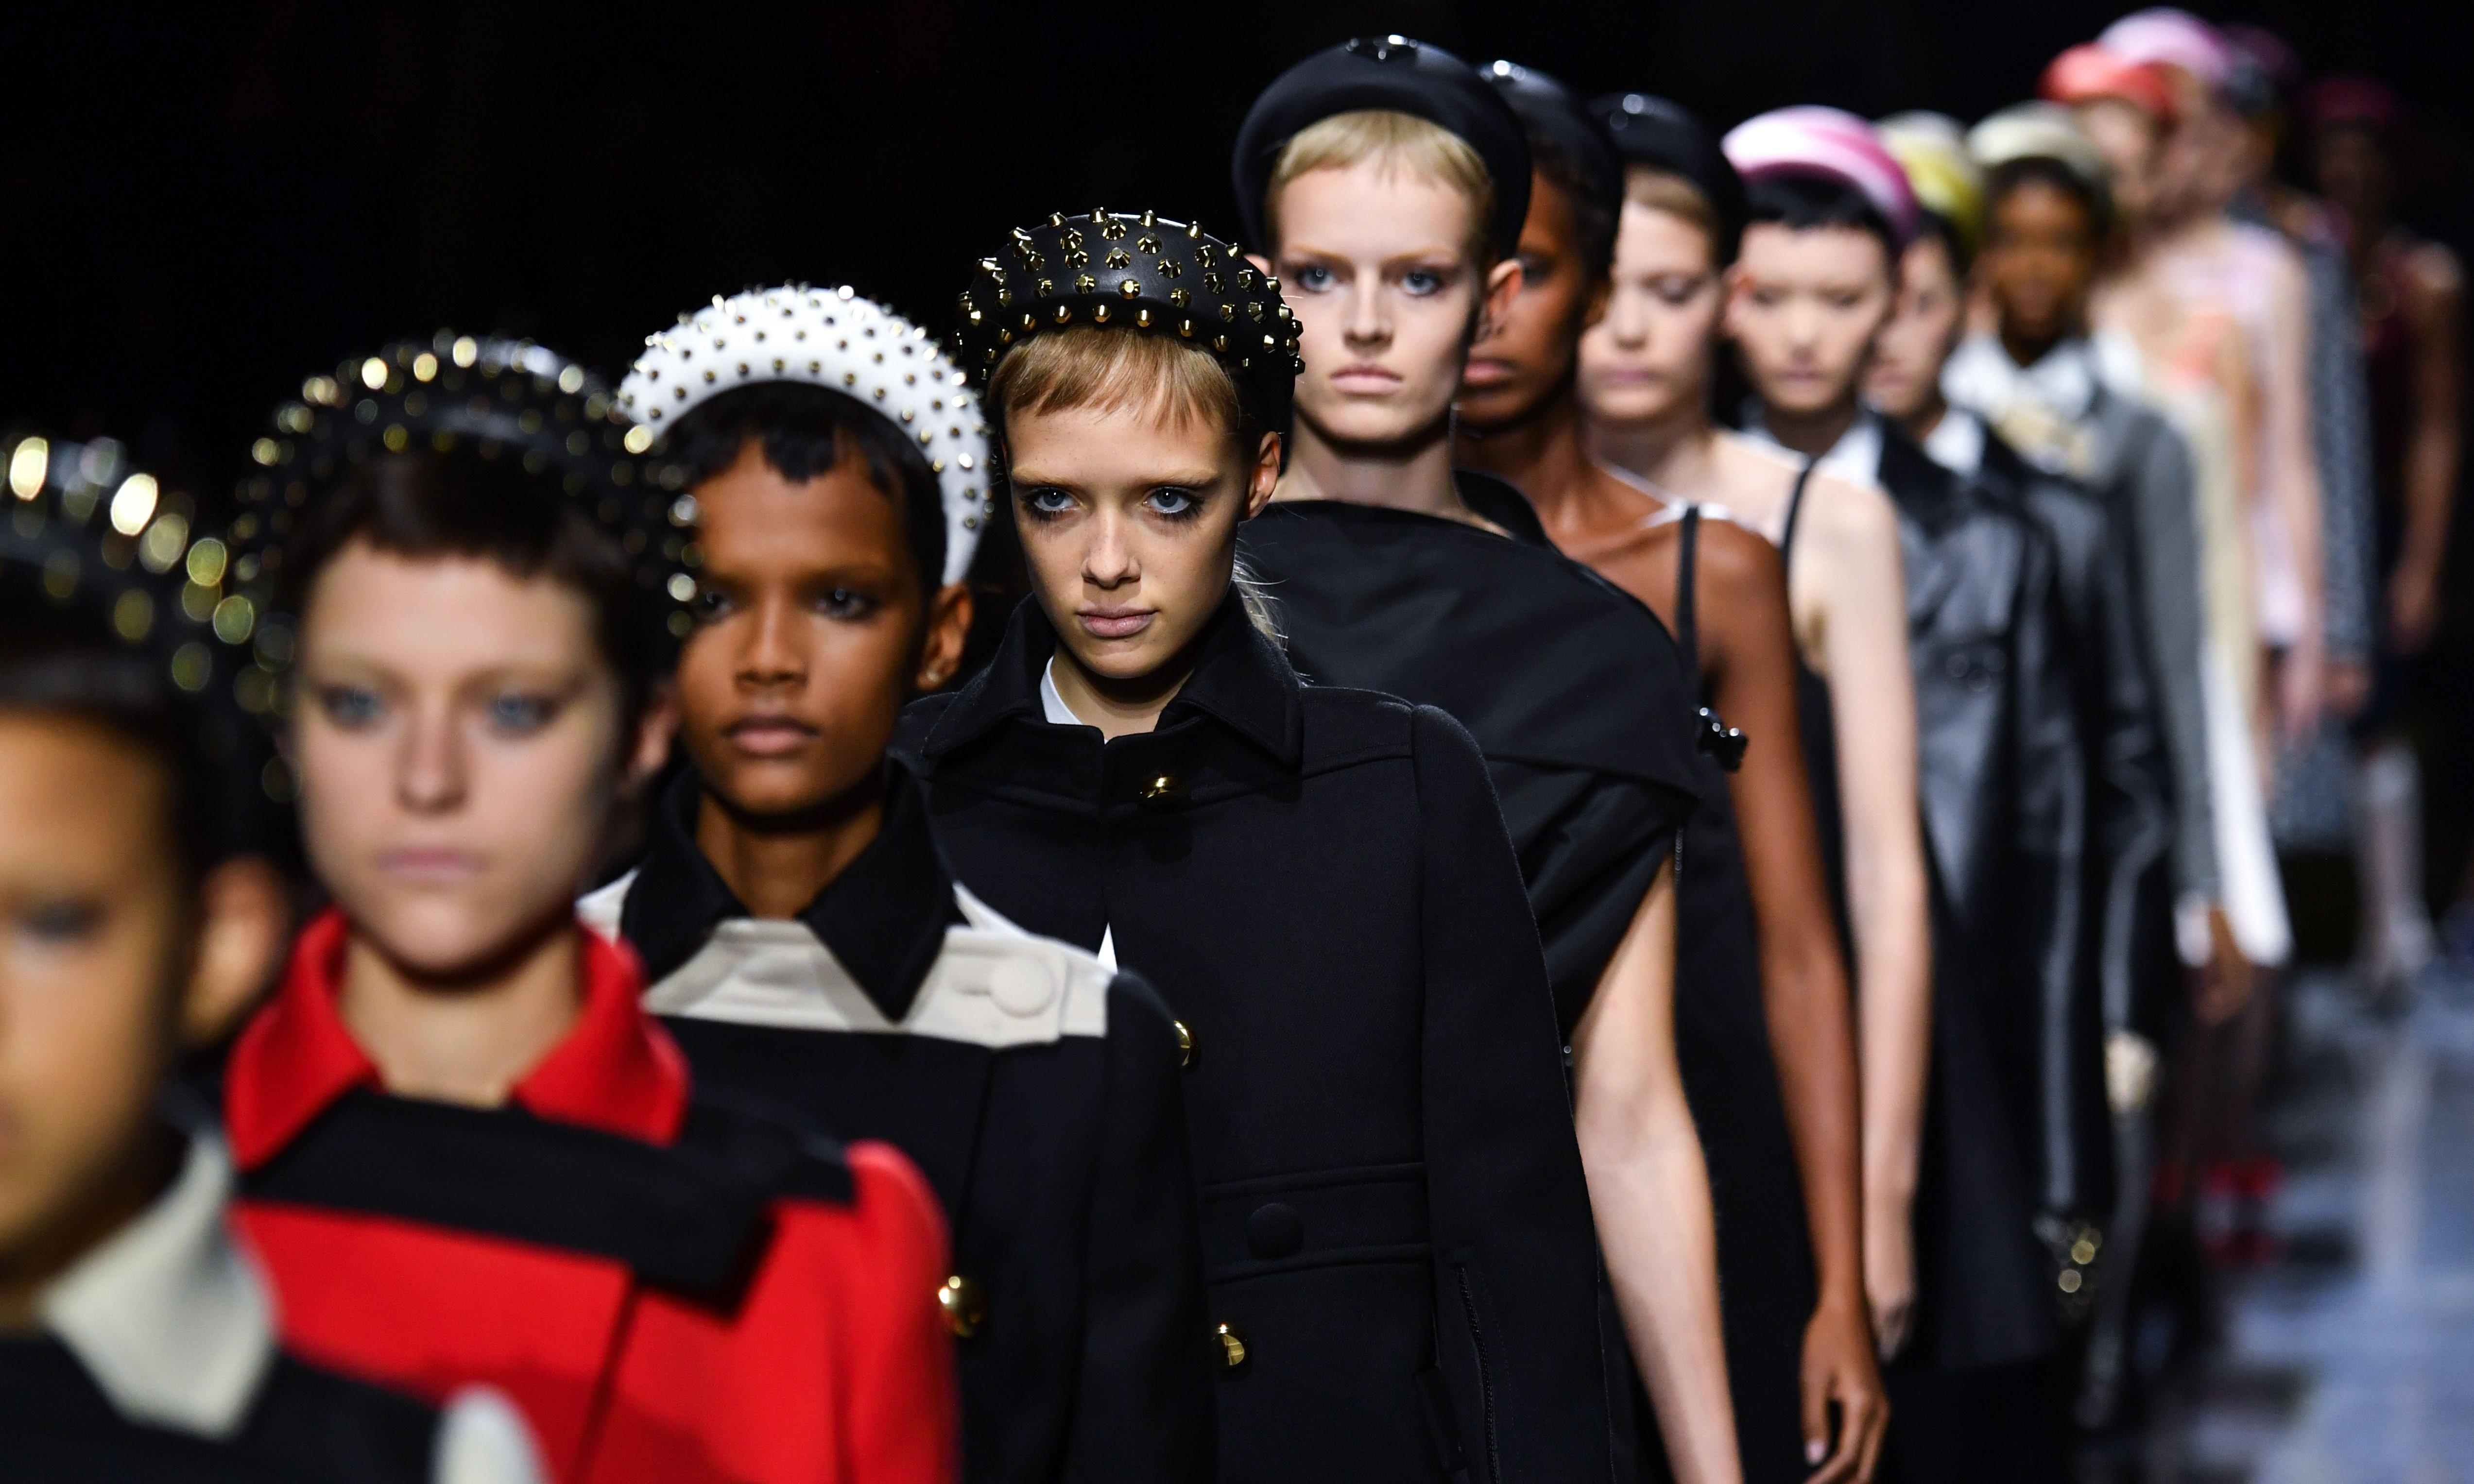 School's out: how headbands leapt from classroom to catwalk